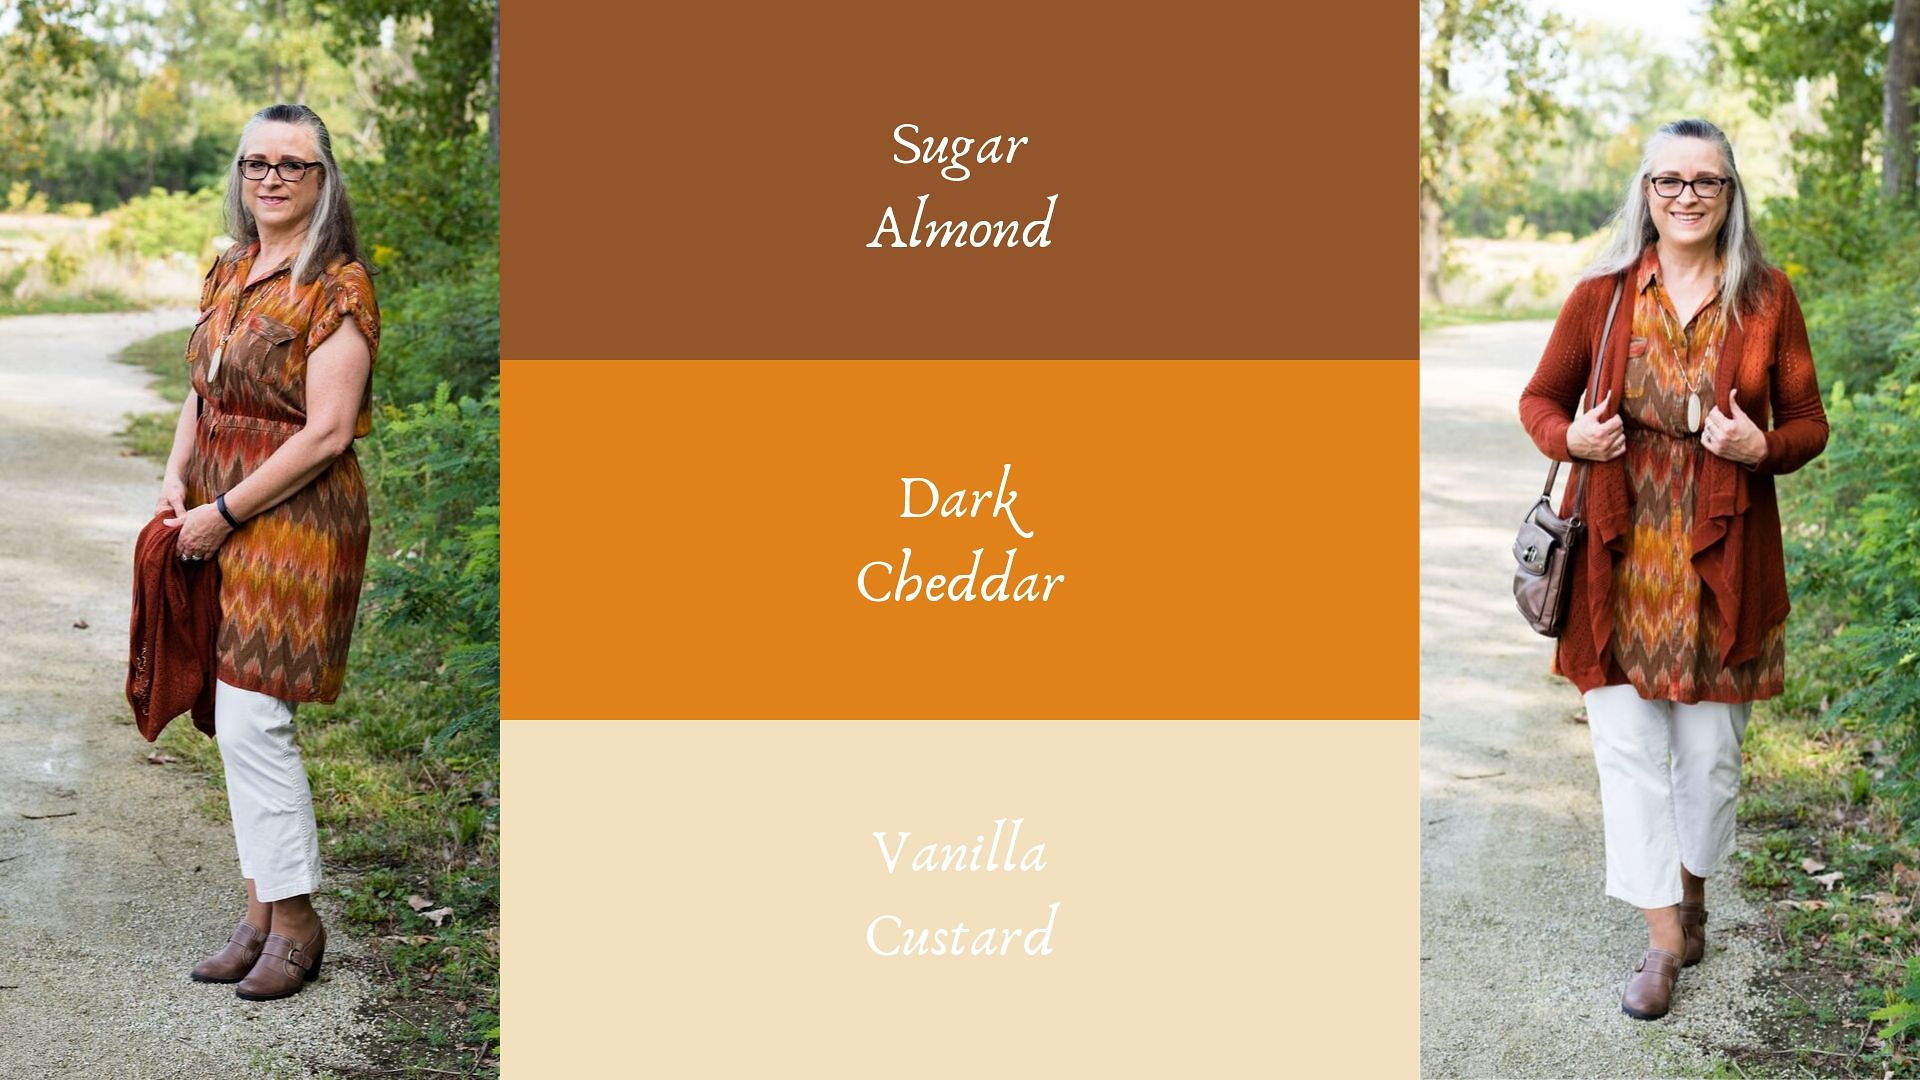 Pantone - Autumn/Winter - 2019 - Sugar Almond and Dark Cheddar